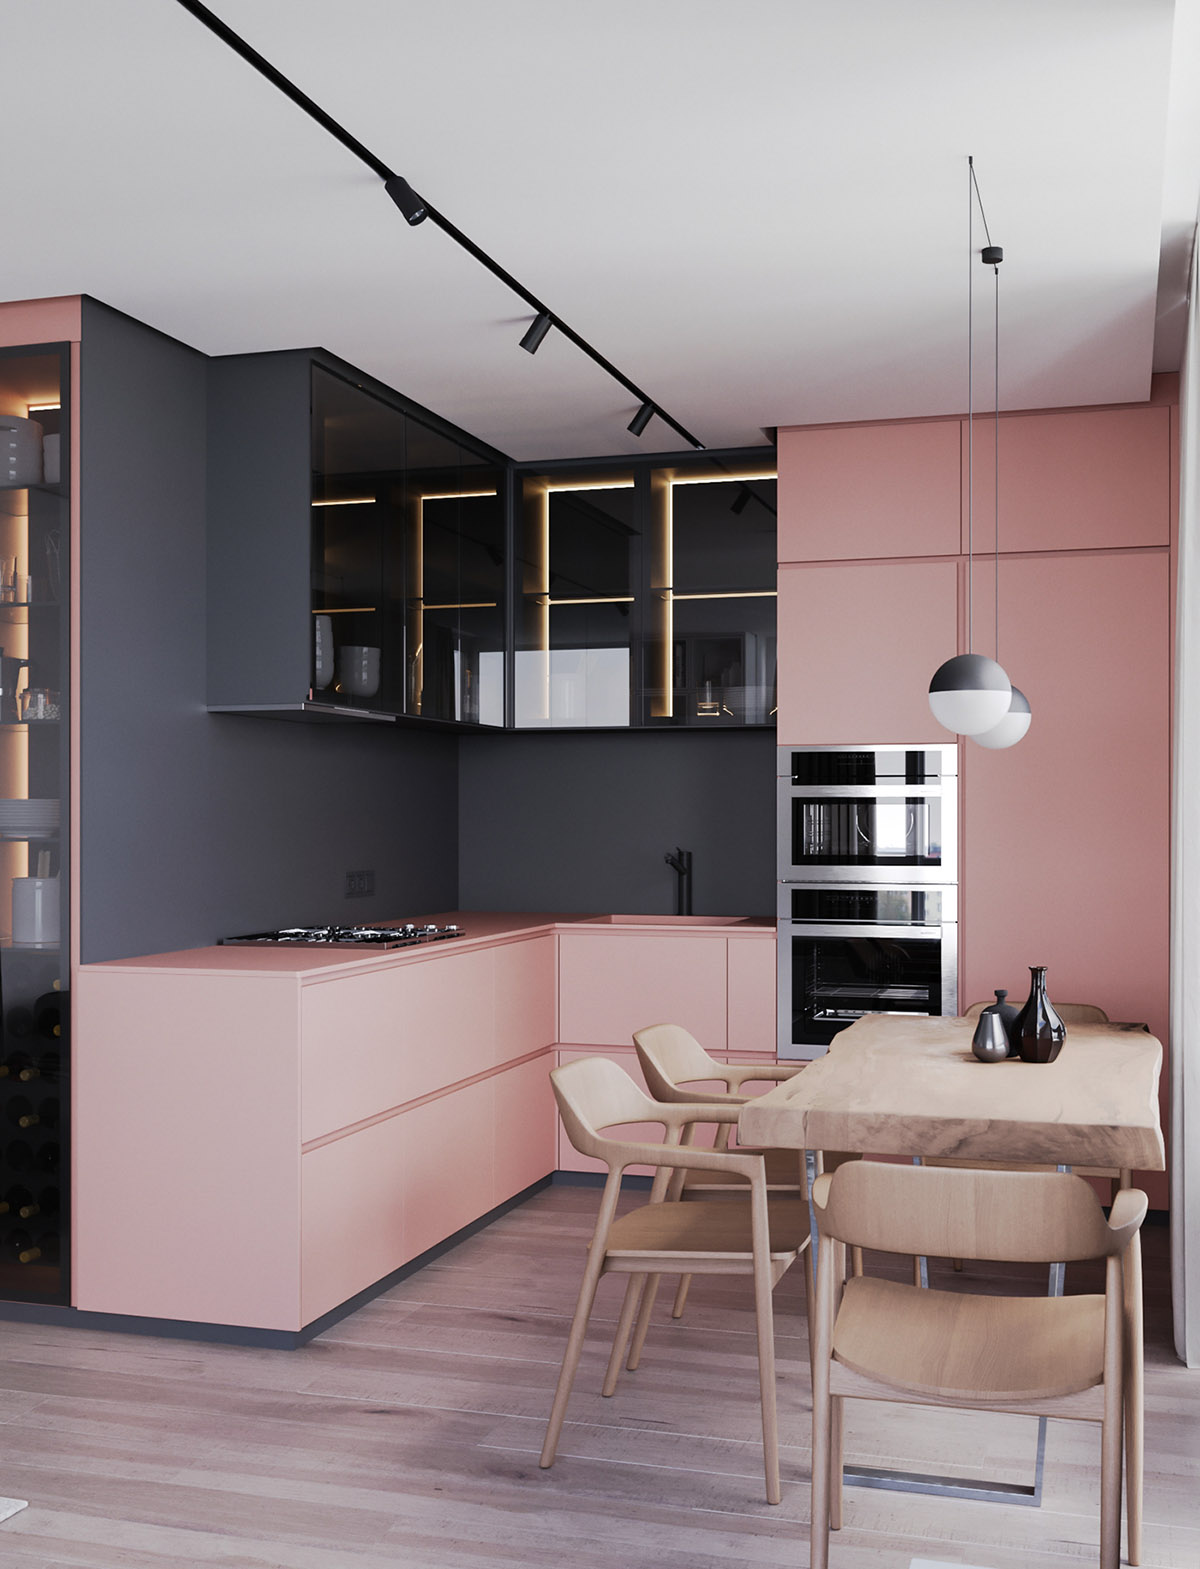 Open Concept Kitchen Living Room Ideas: A Striking Example Of Interior Design Using Pink & Grey